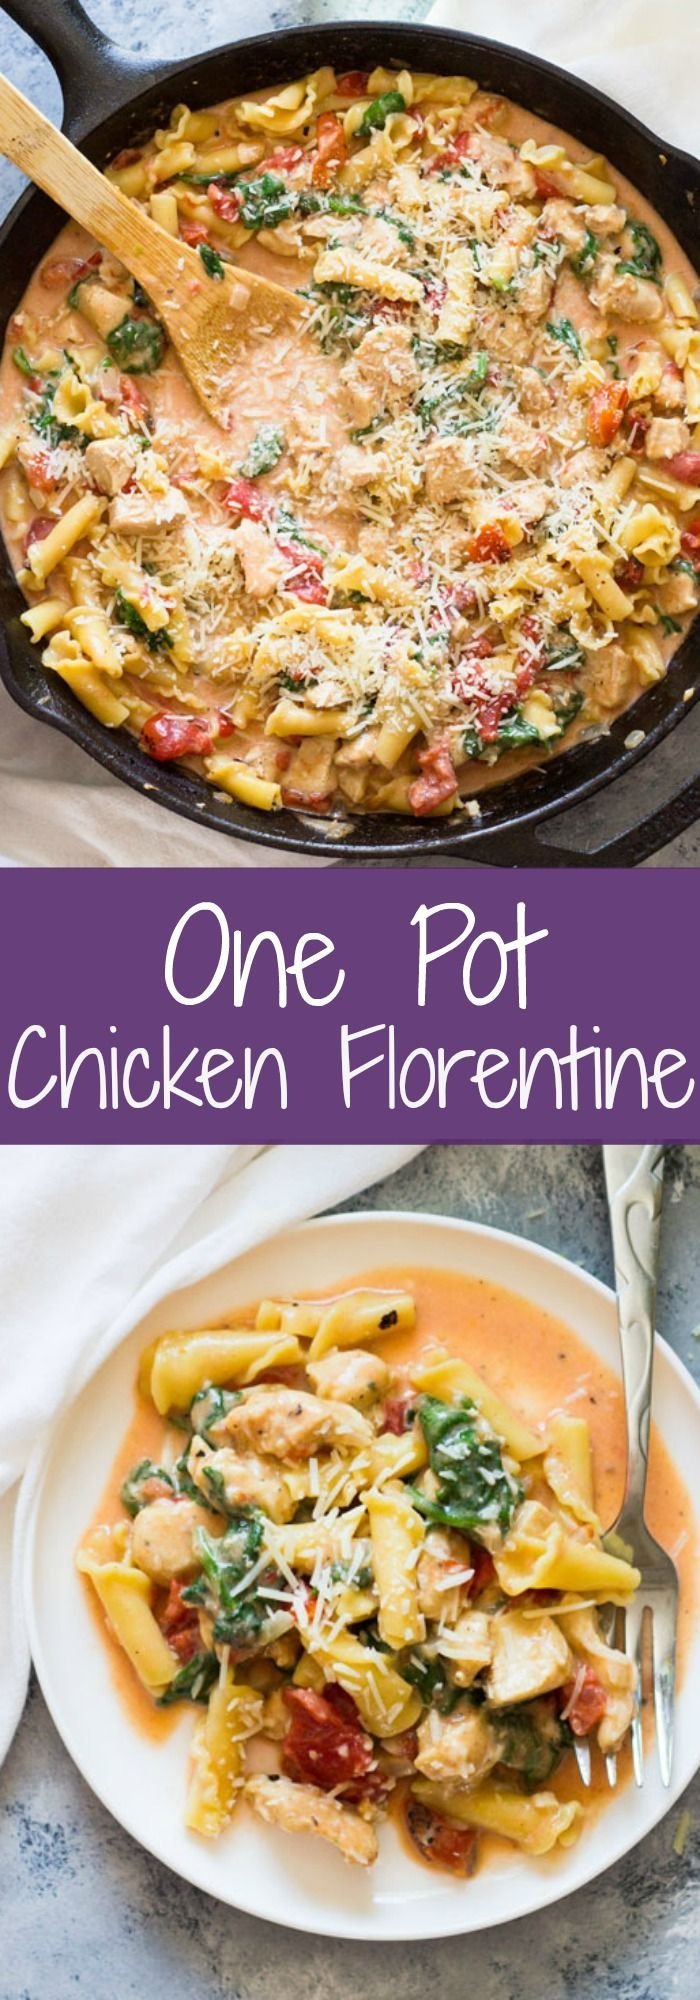 One Pot Chicken Florentine Pasta -is ready in 30 minutes. It's creamy, saucy and…